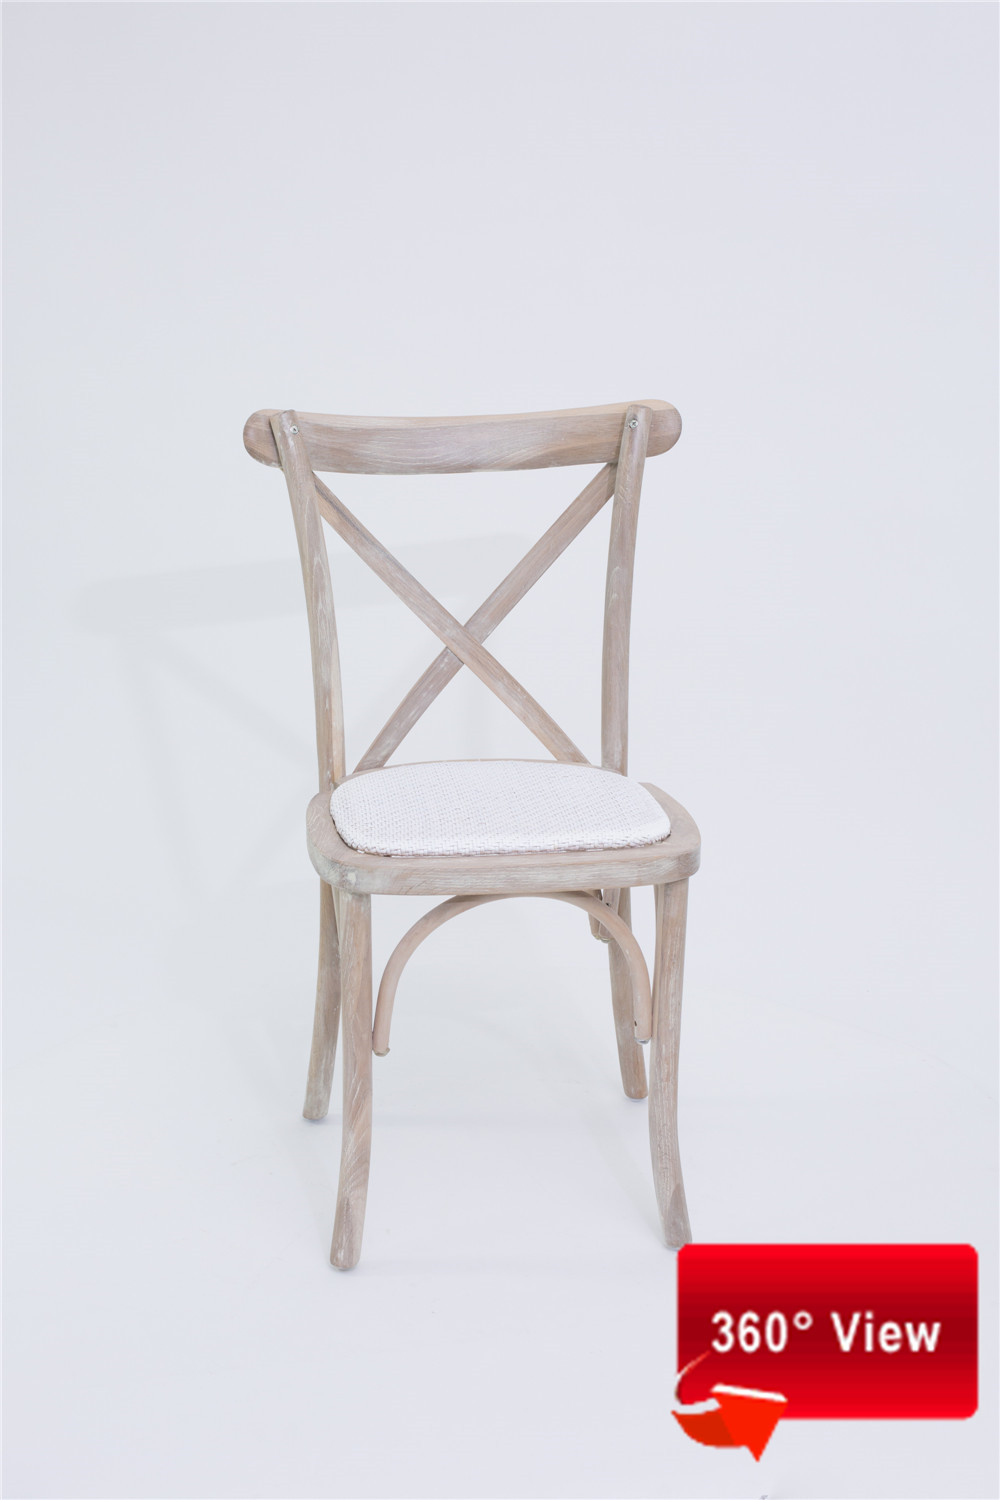 S-9002T RATTAN SEAT CROSS BACK CHAIR